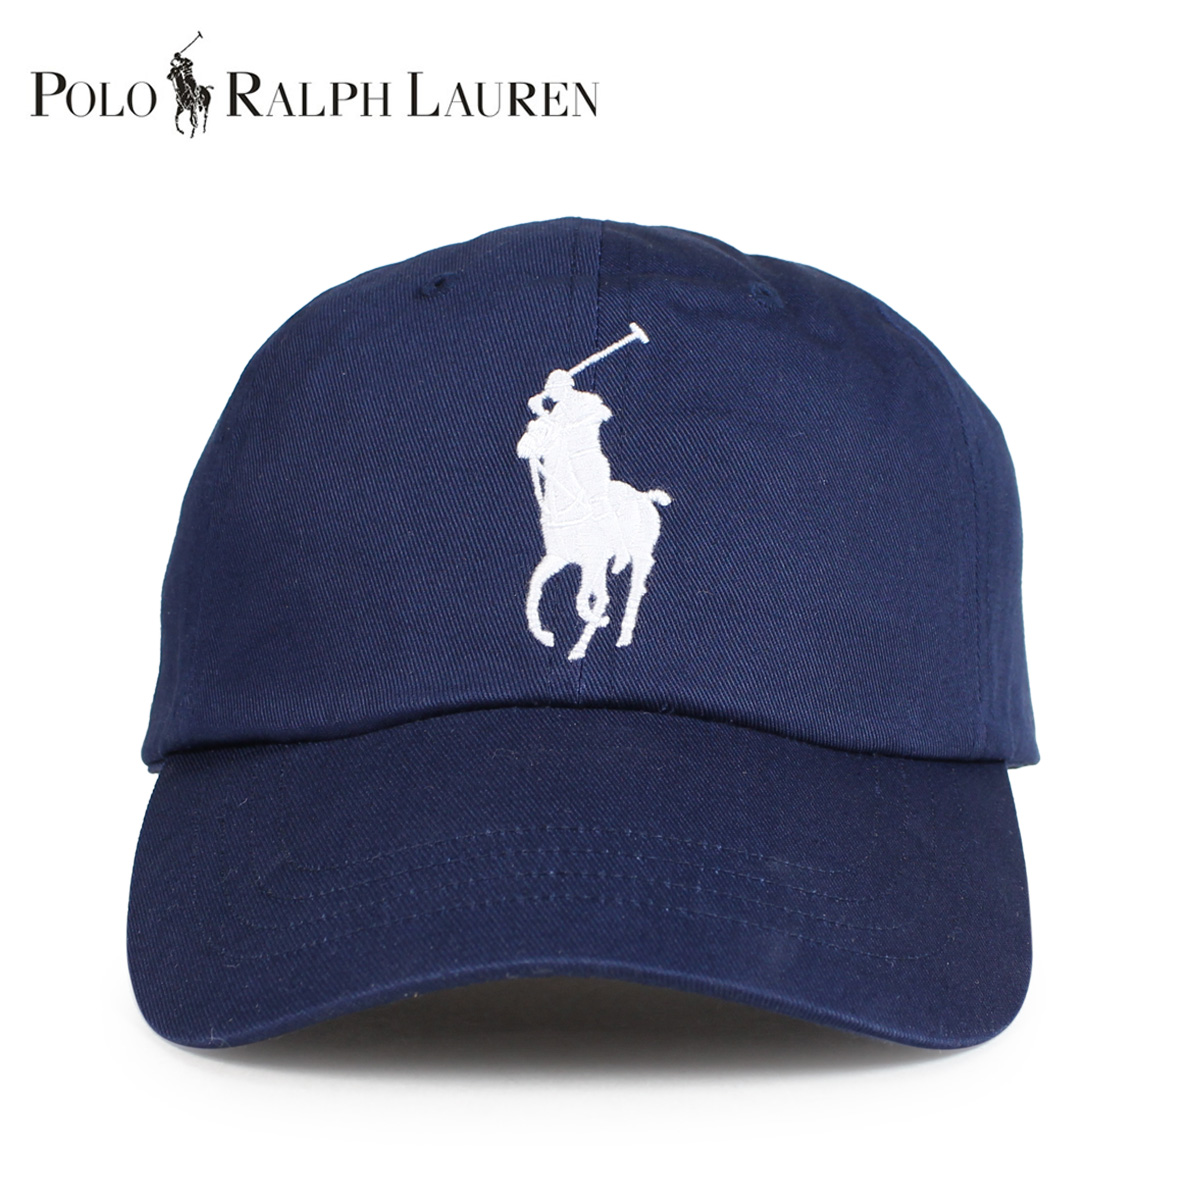 7272b11d POLO RALPH LAUREN polo Ralph Lauren cap hat men gap Dis cotton BIG PONY  CHINO BASEBALL ...